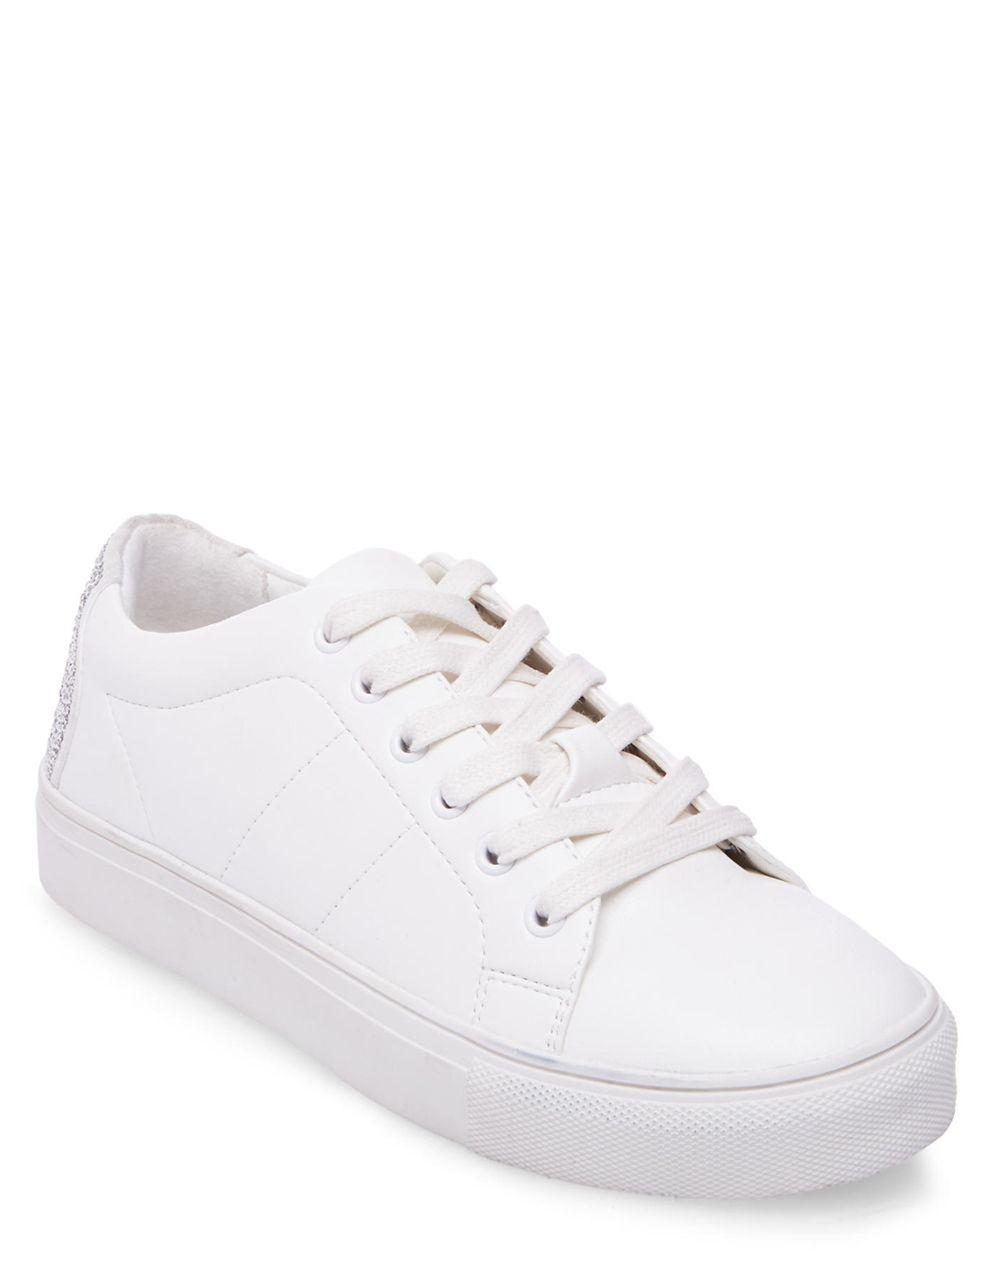 dfb71793b8f Steve Madden Smiley Low-top Sneakers in White - Lyst